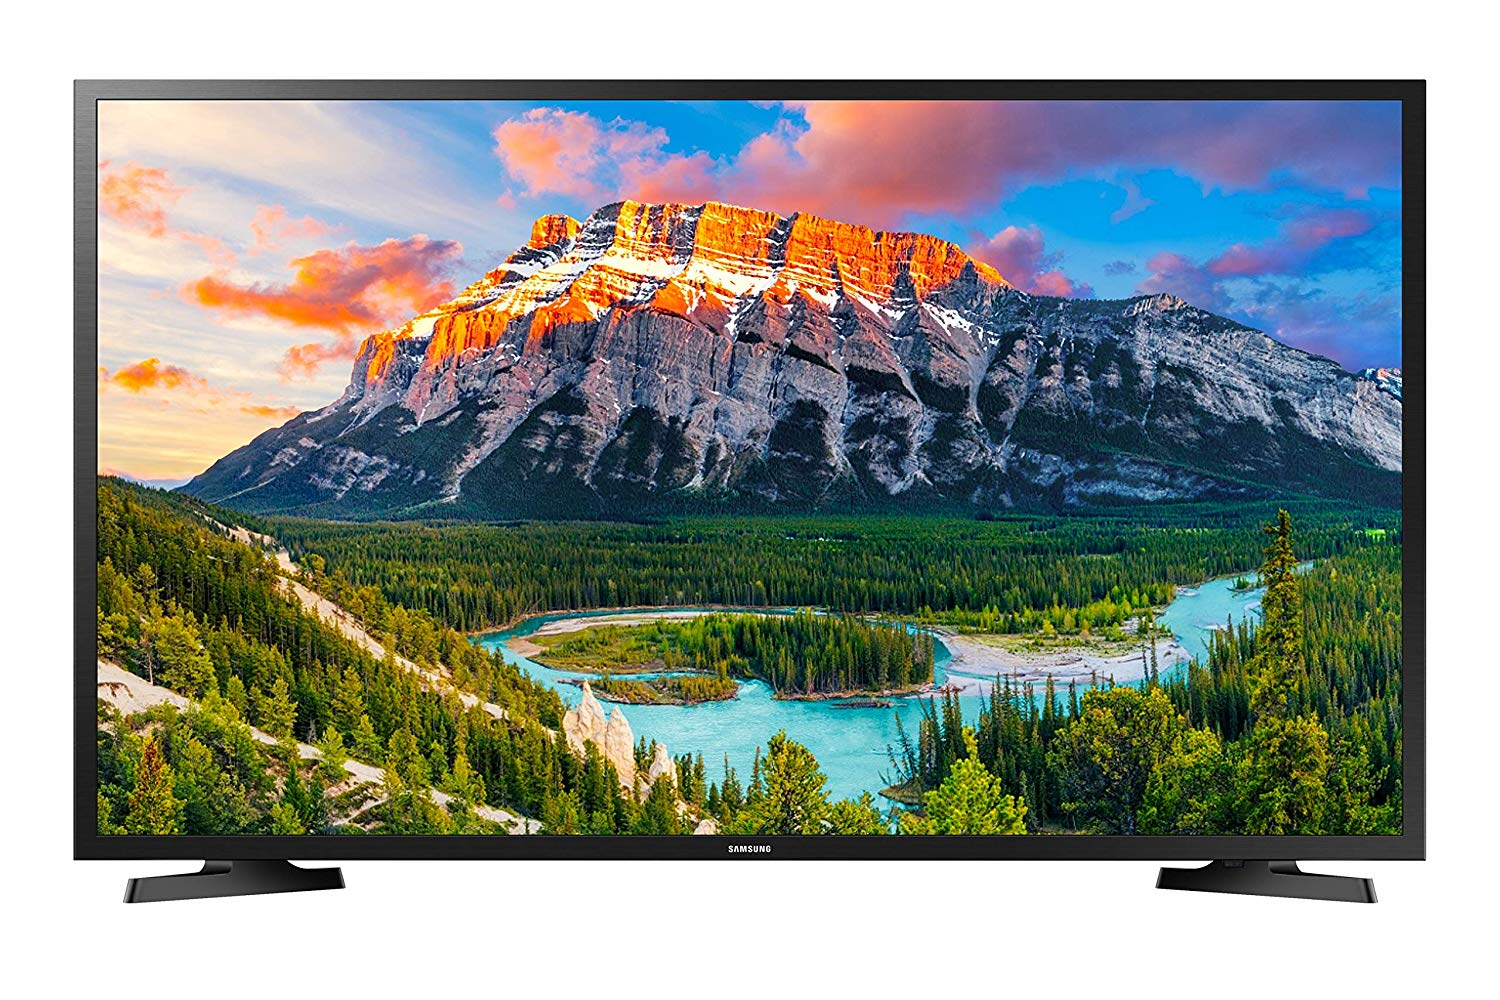 Samsung 108cms (43 inches) Full HD On Smart LED TV 43N5300